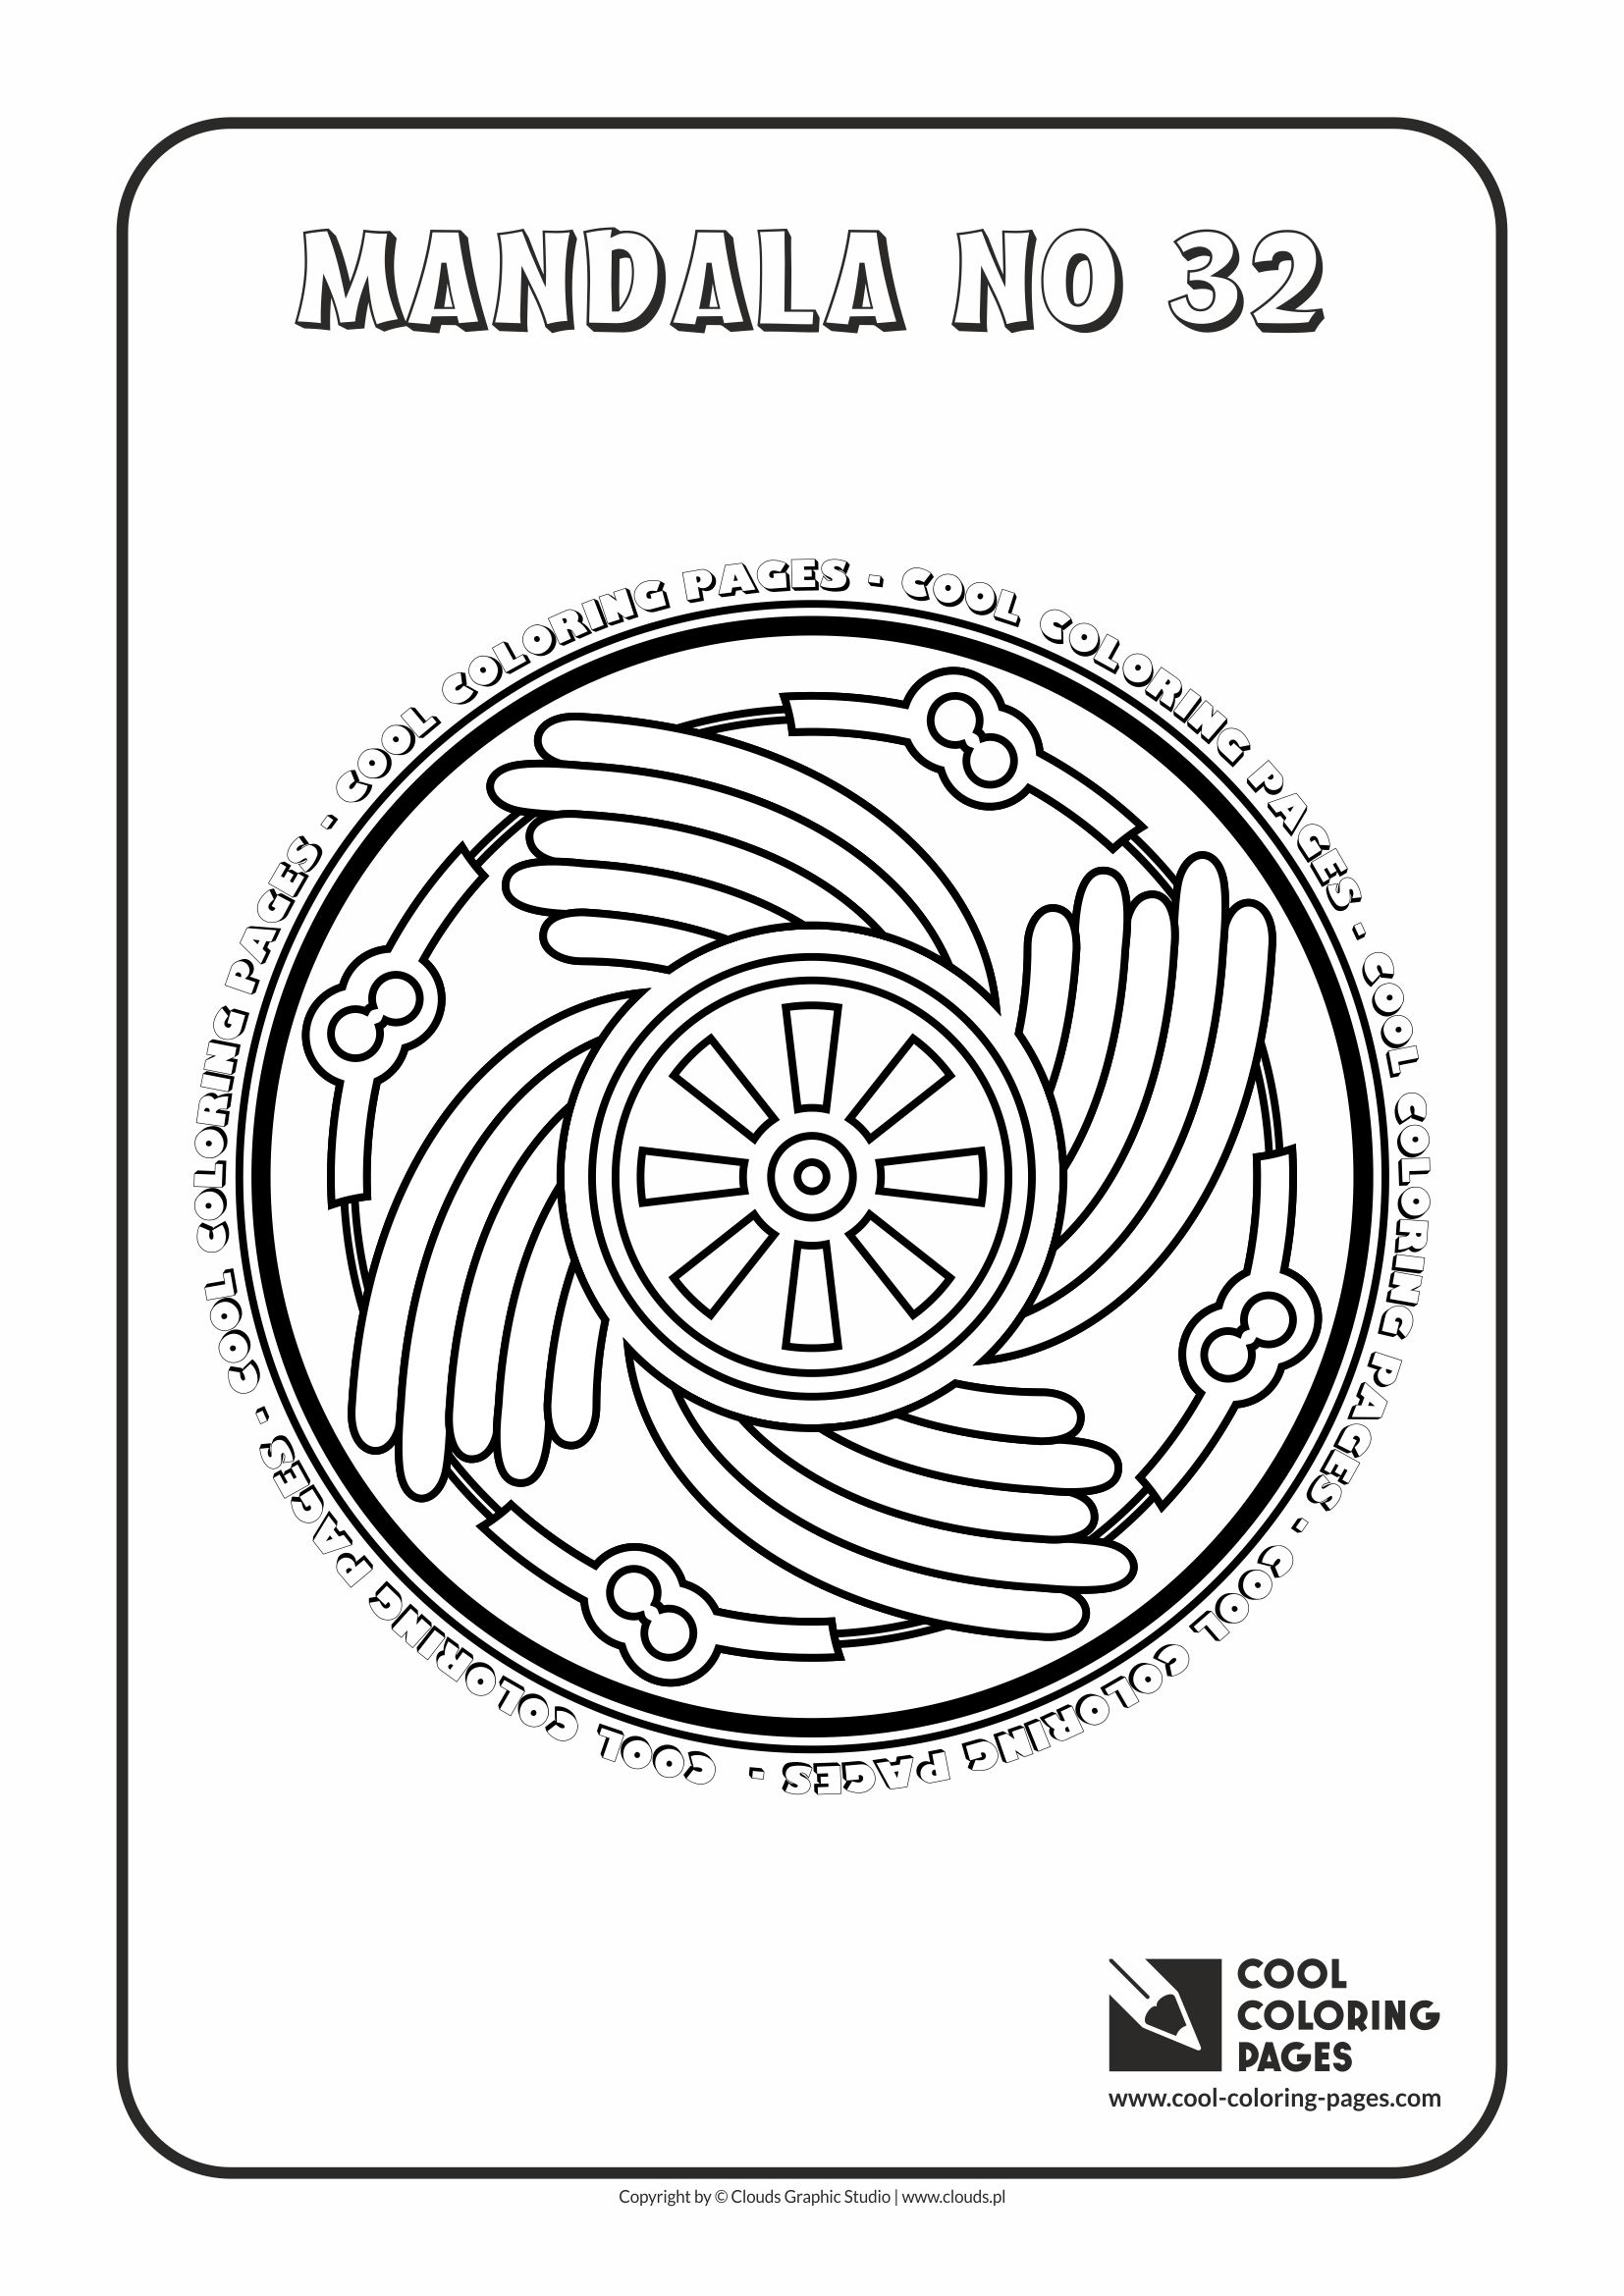 Cool Coloring Pages - Mandalas / Mandala no 32